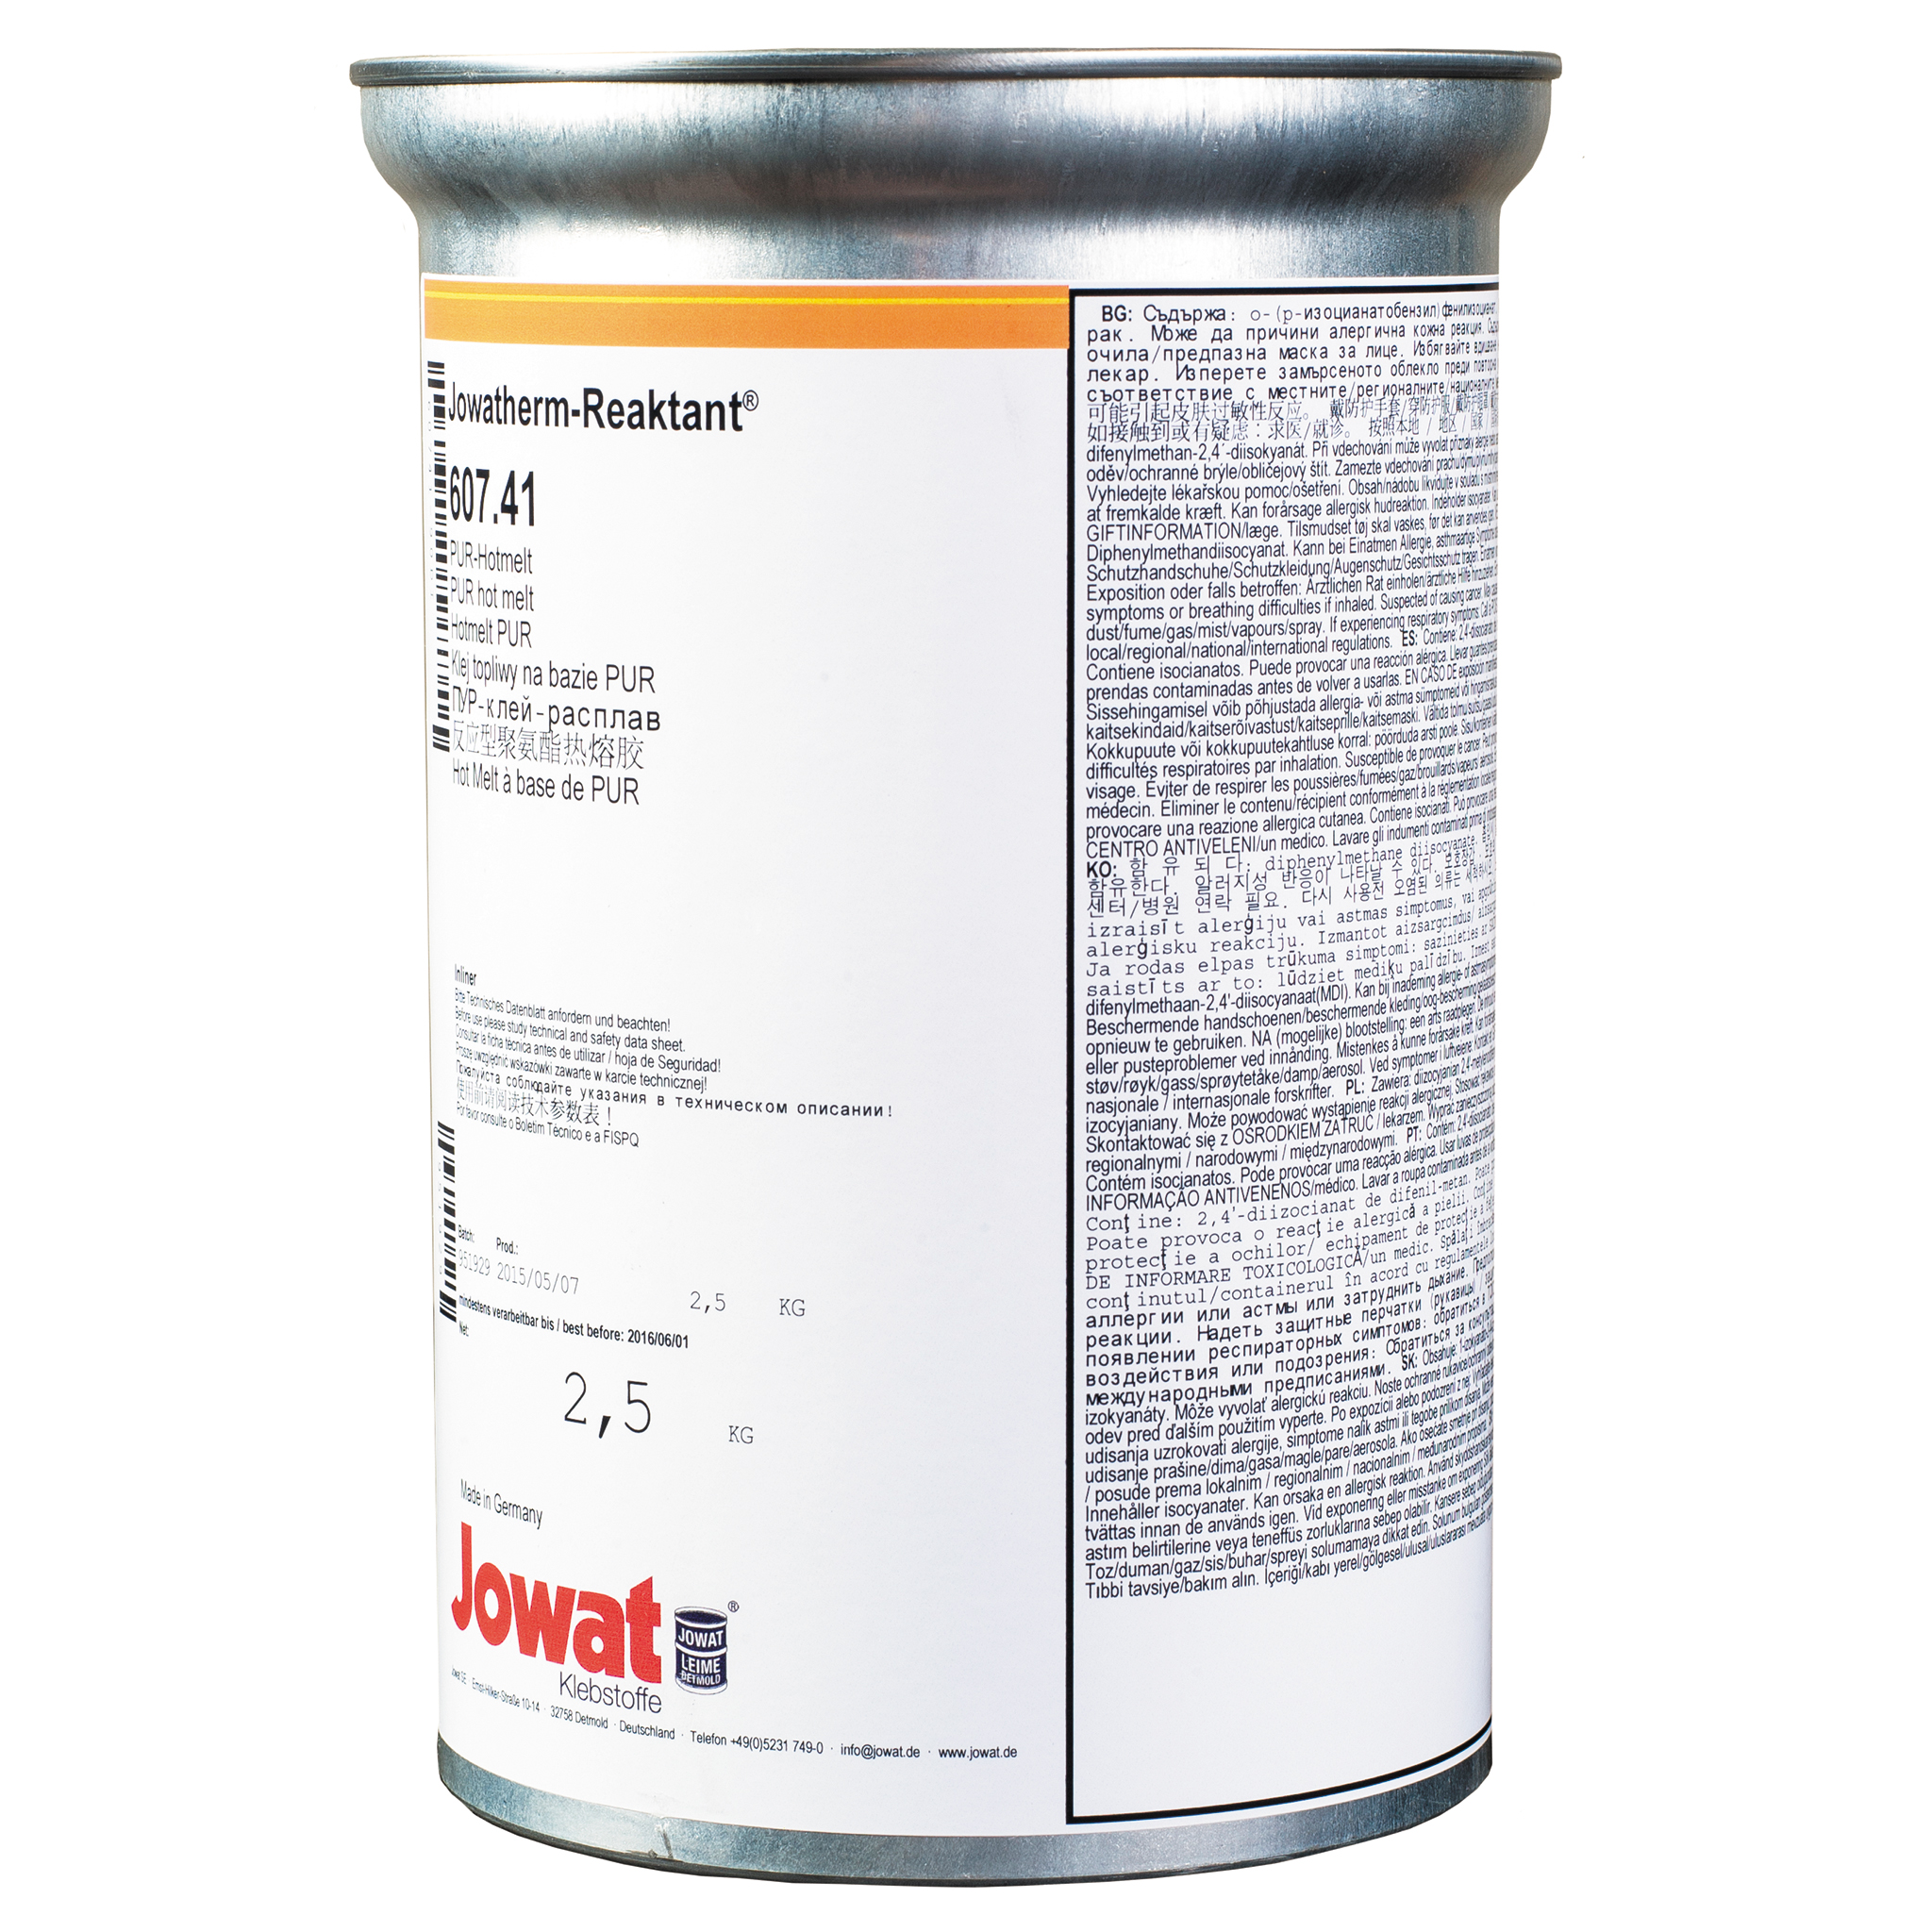 JOWATHERM 607.41 White - PUR Hot Melt 2,5 kg